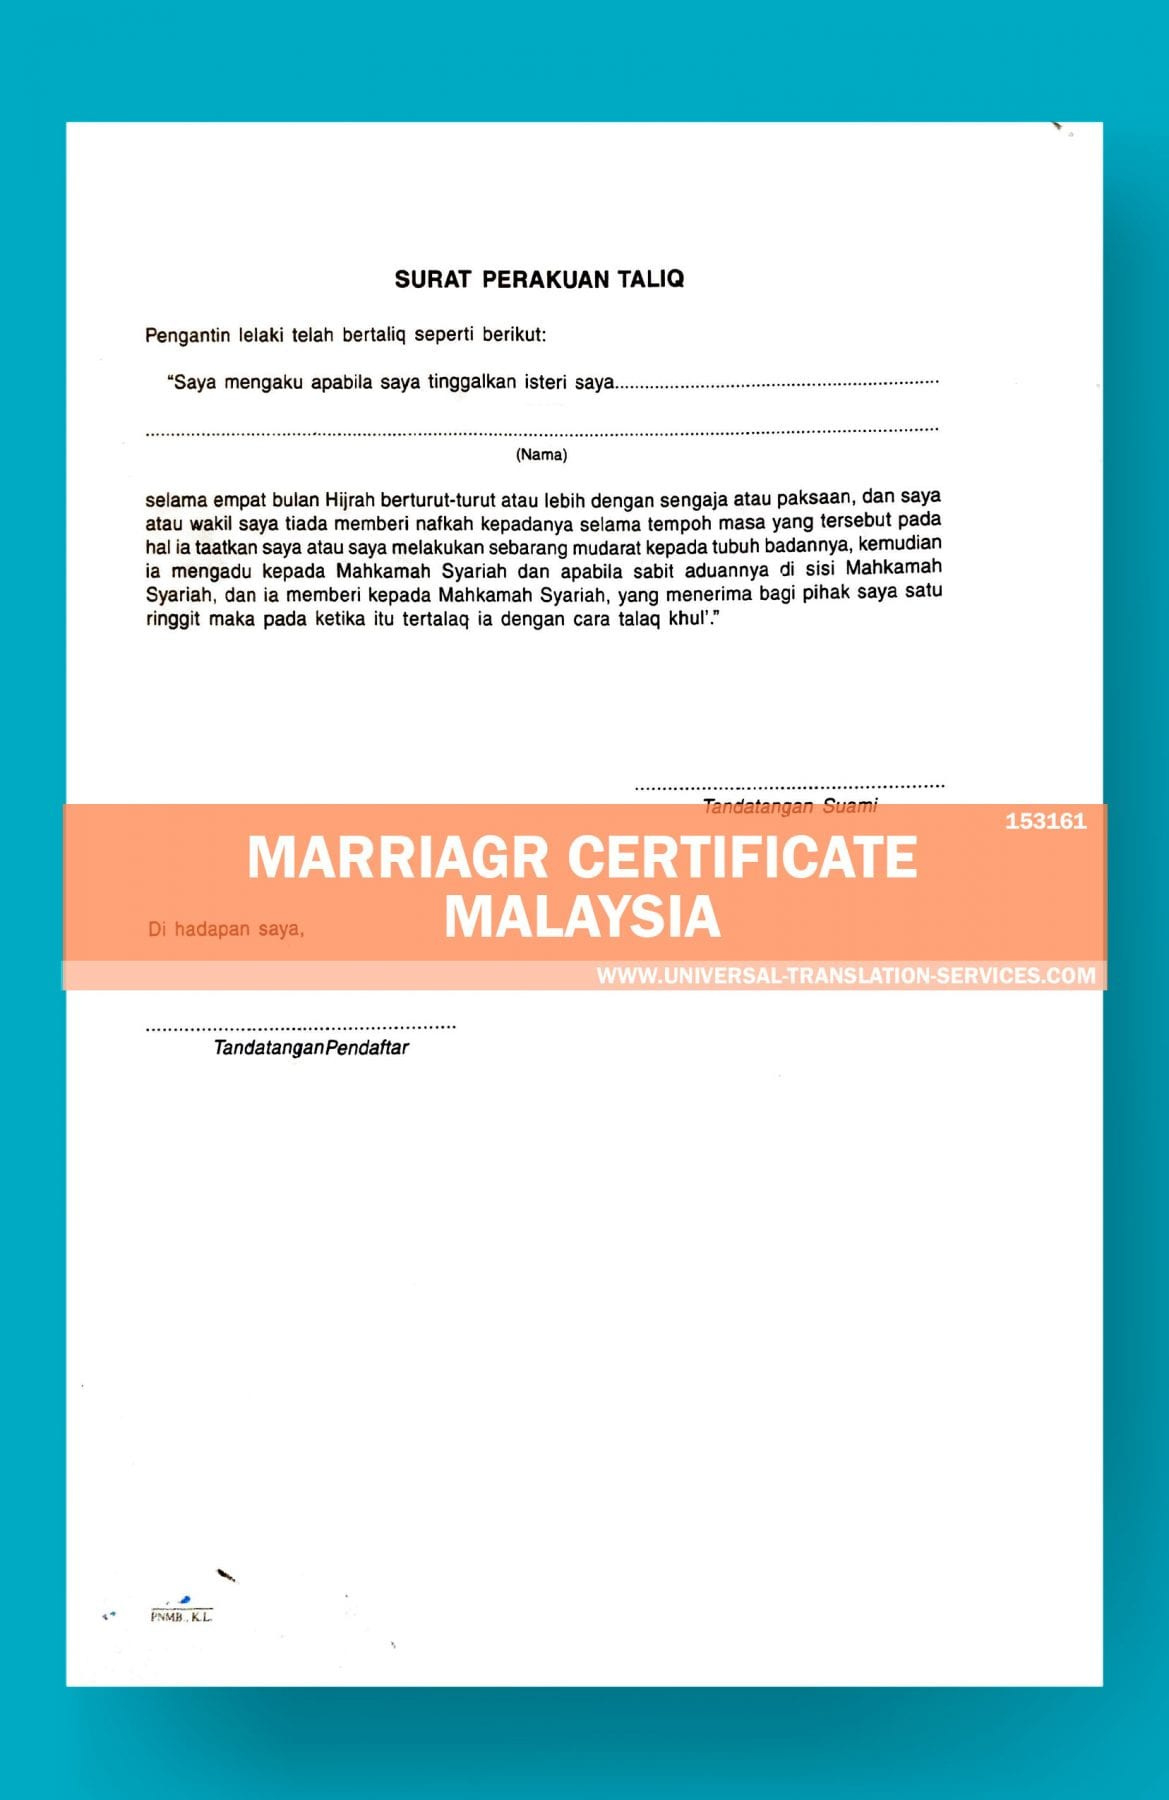 Malaysia Marriage Certificate Translation Template By Ata In Marriage Certificate Translation Template